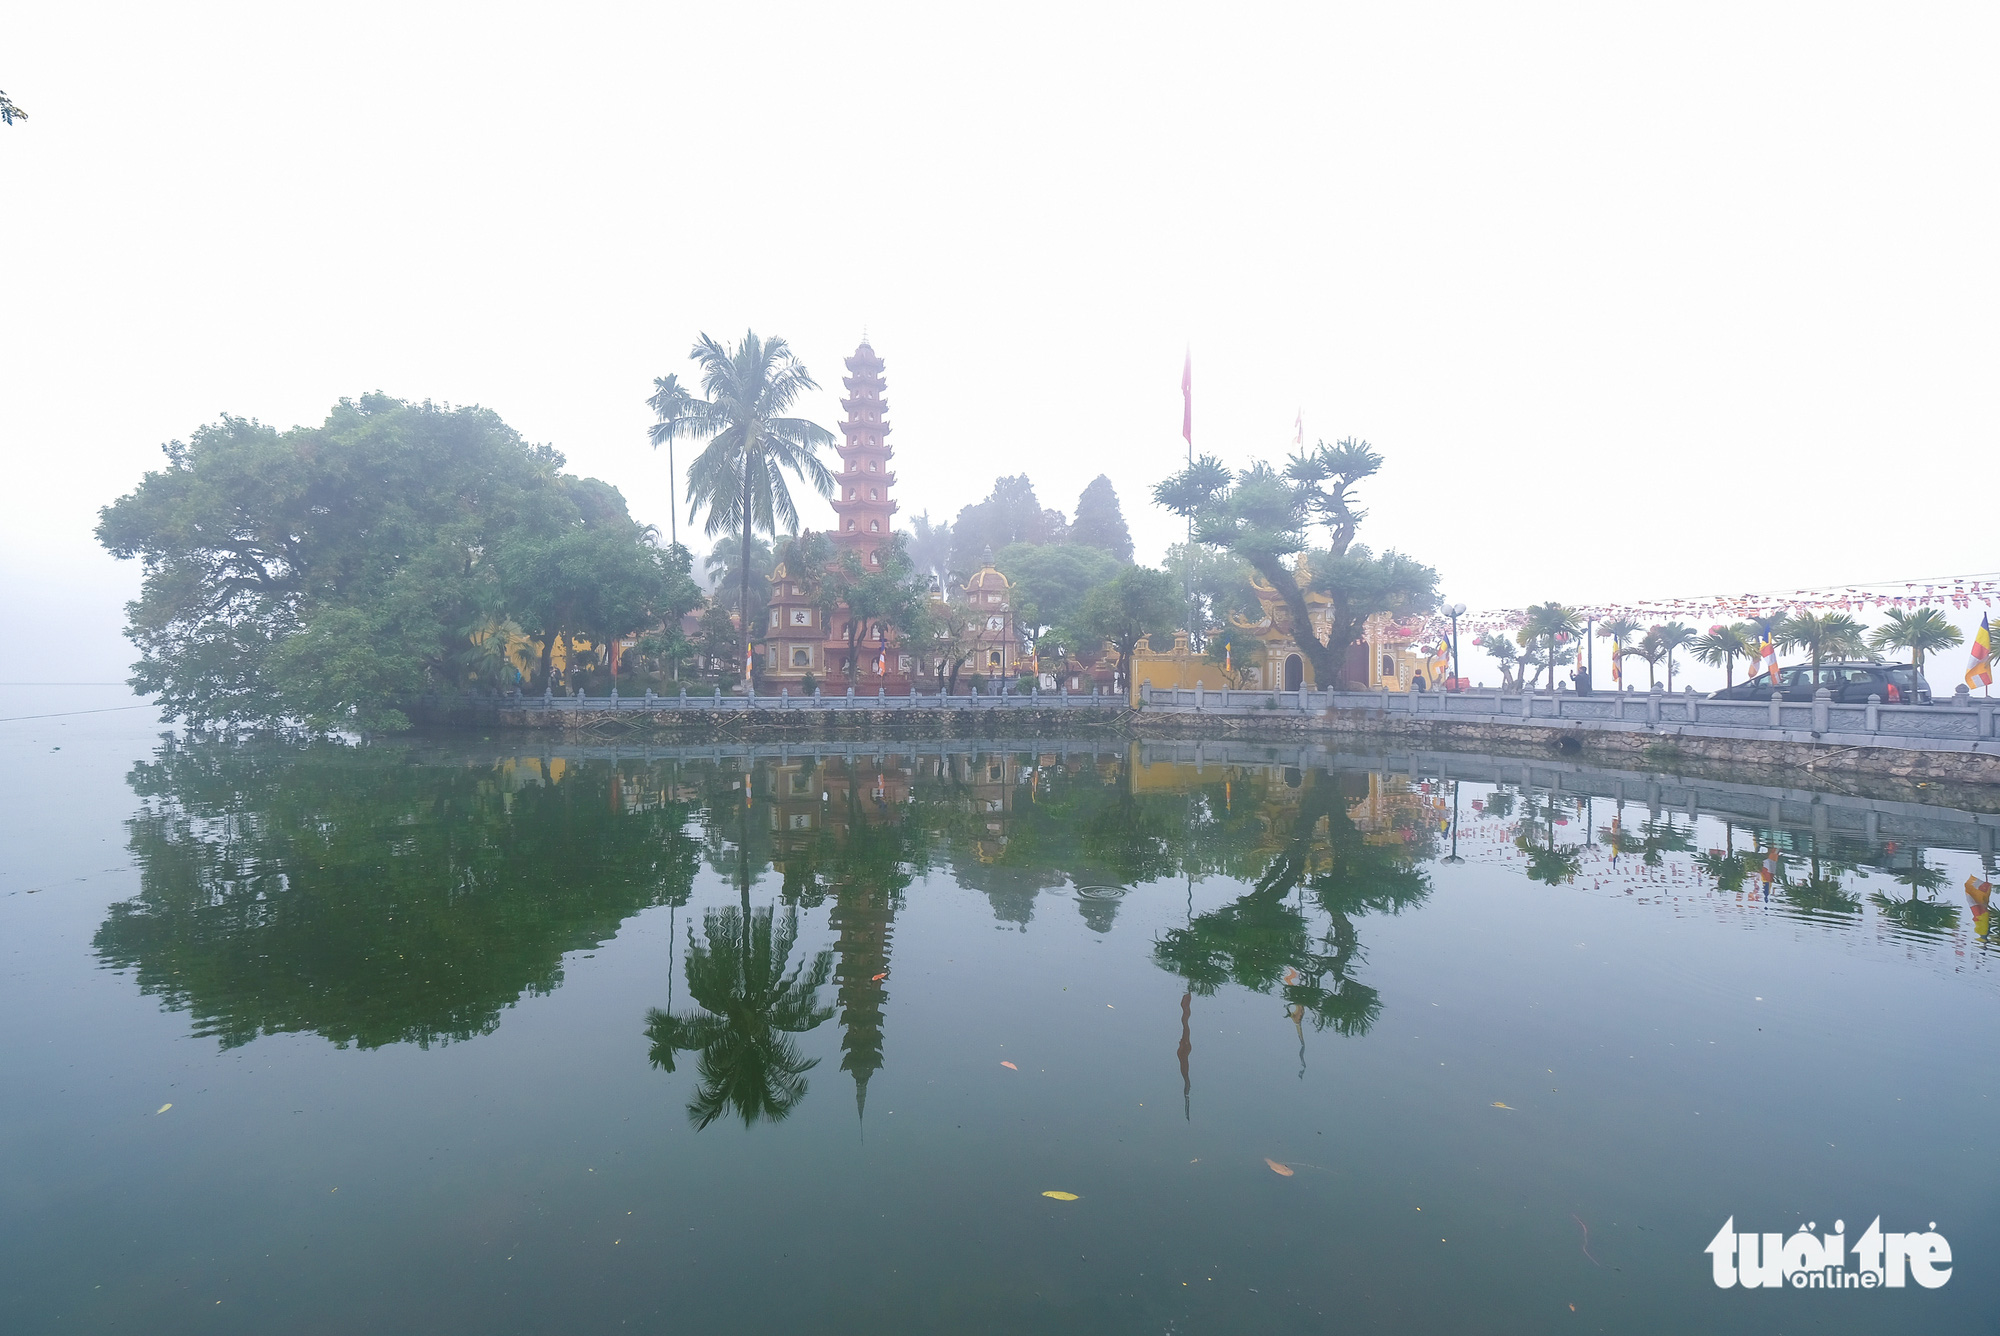 Tran Quoc Pagoda in the middle of Ho Tay (West Lake).